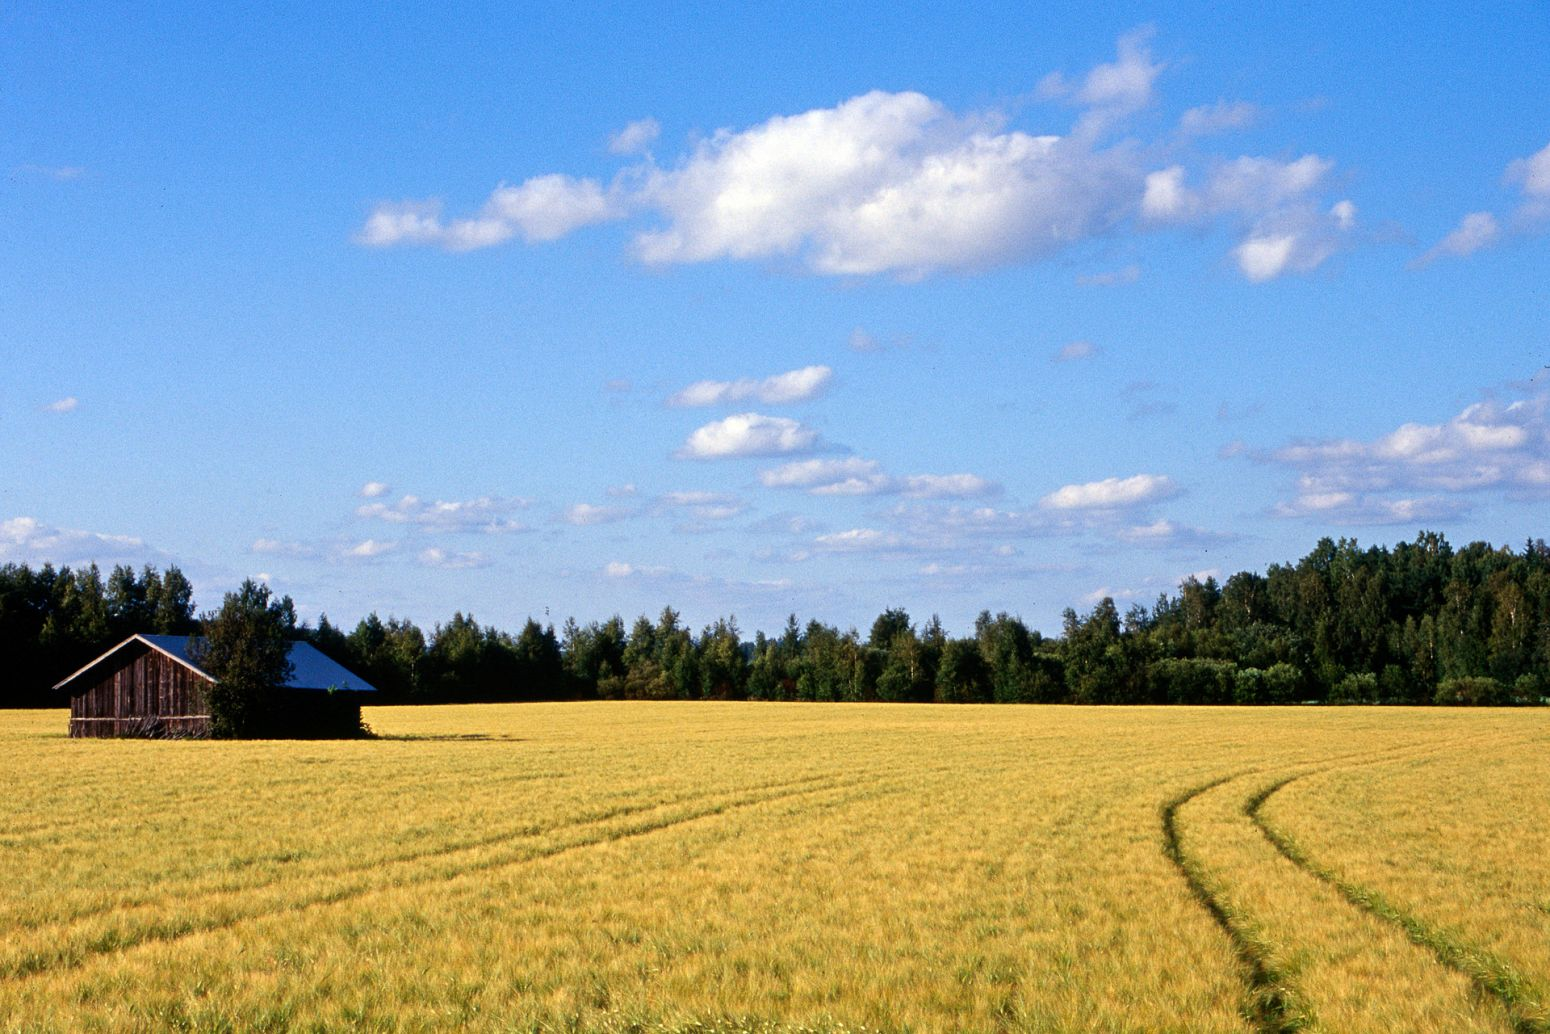 Field and barn, Finland